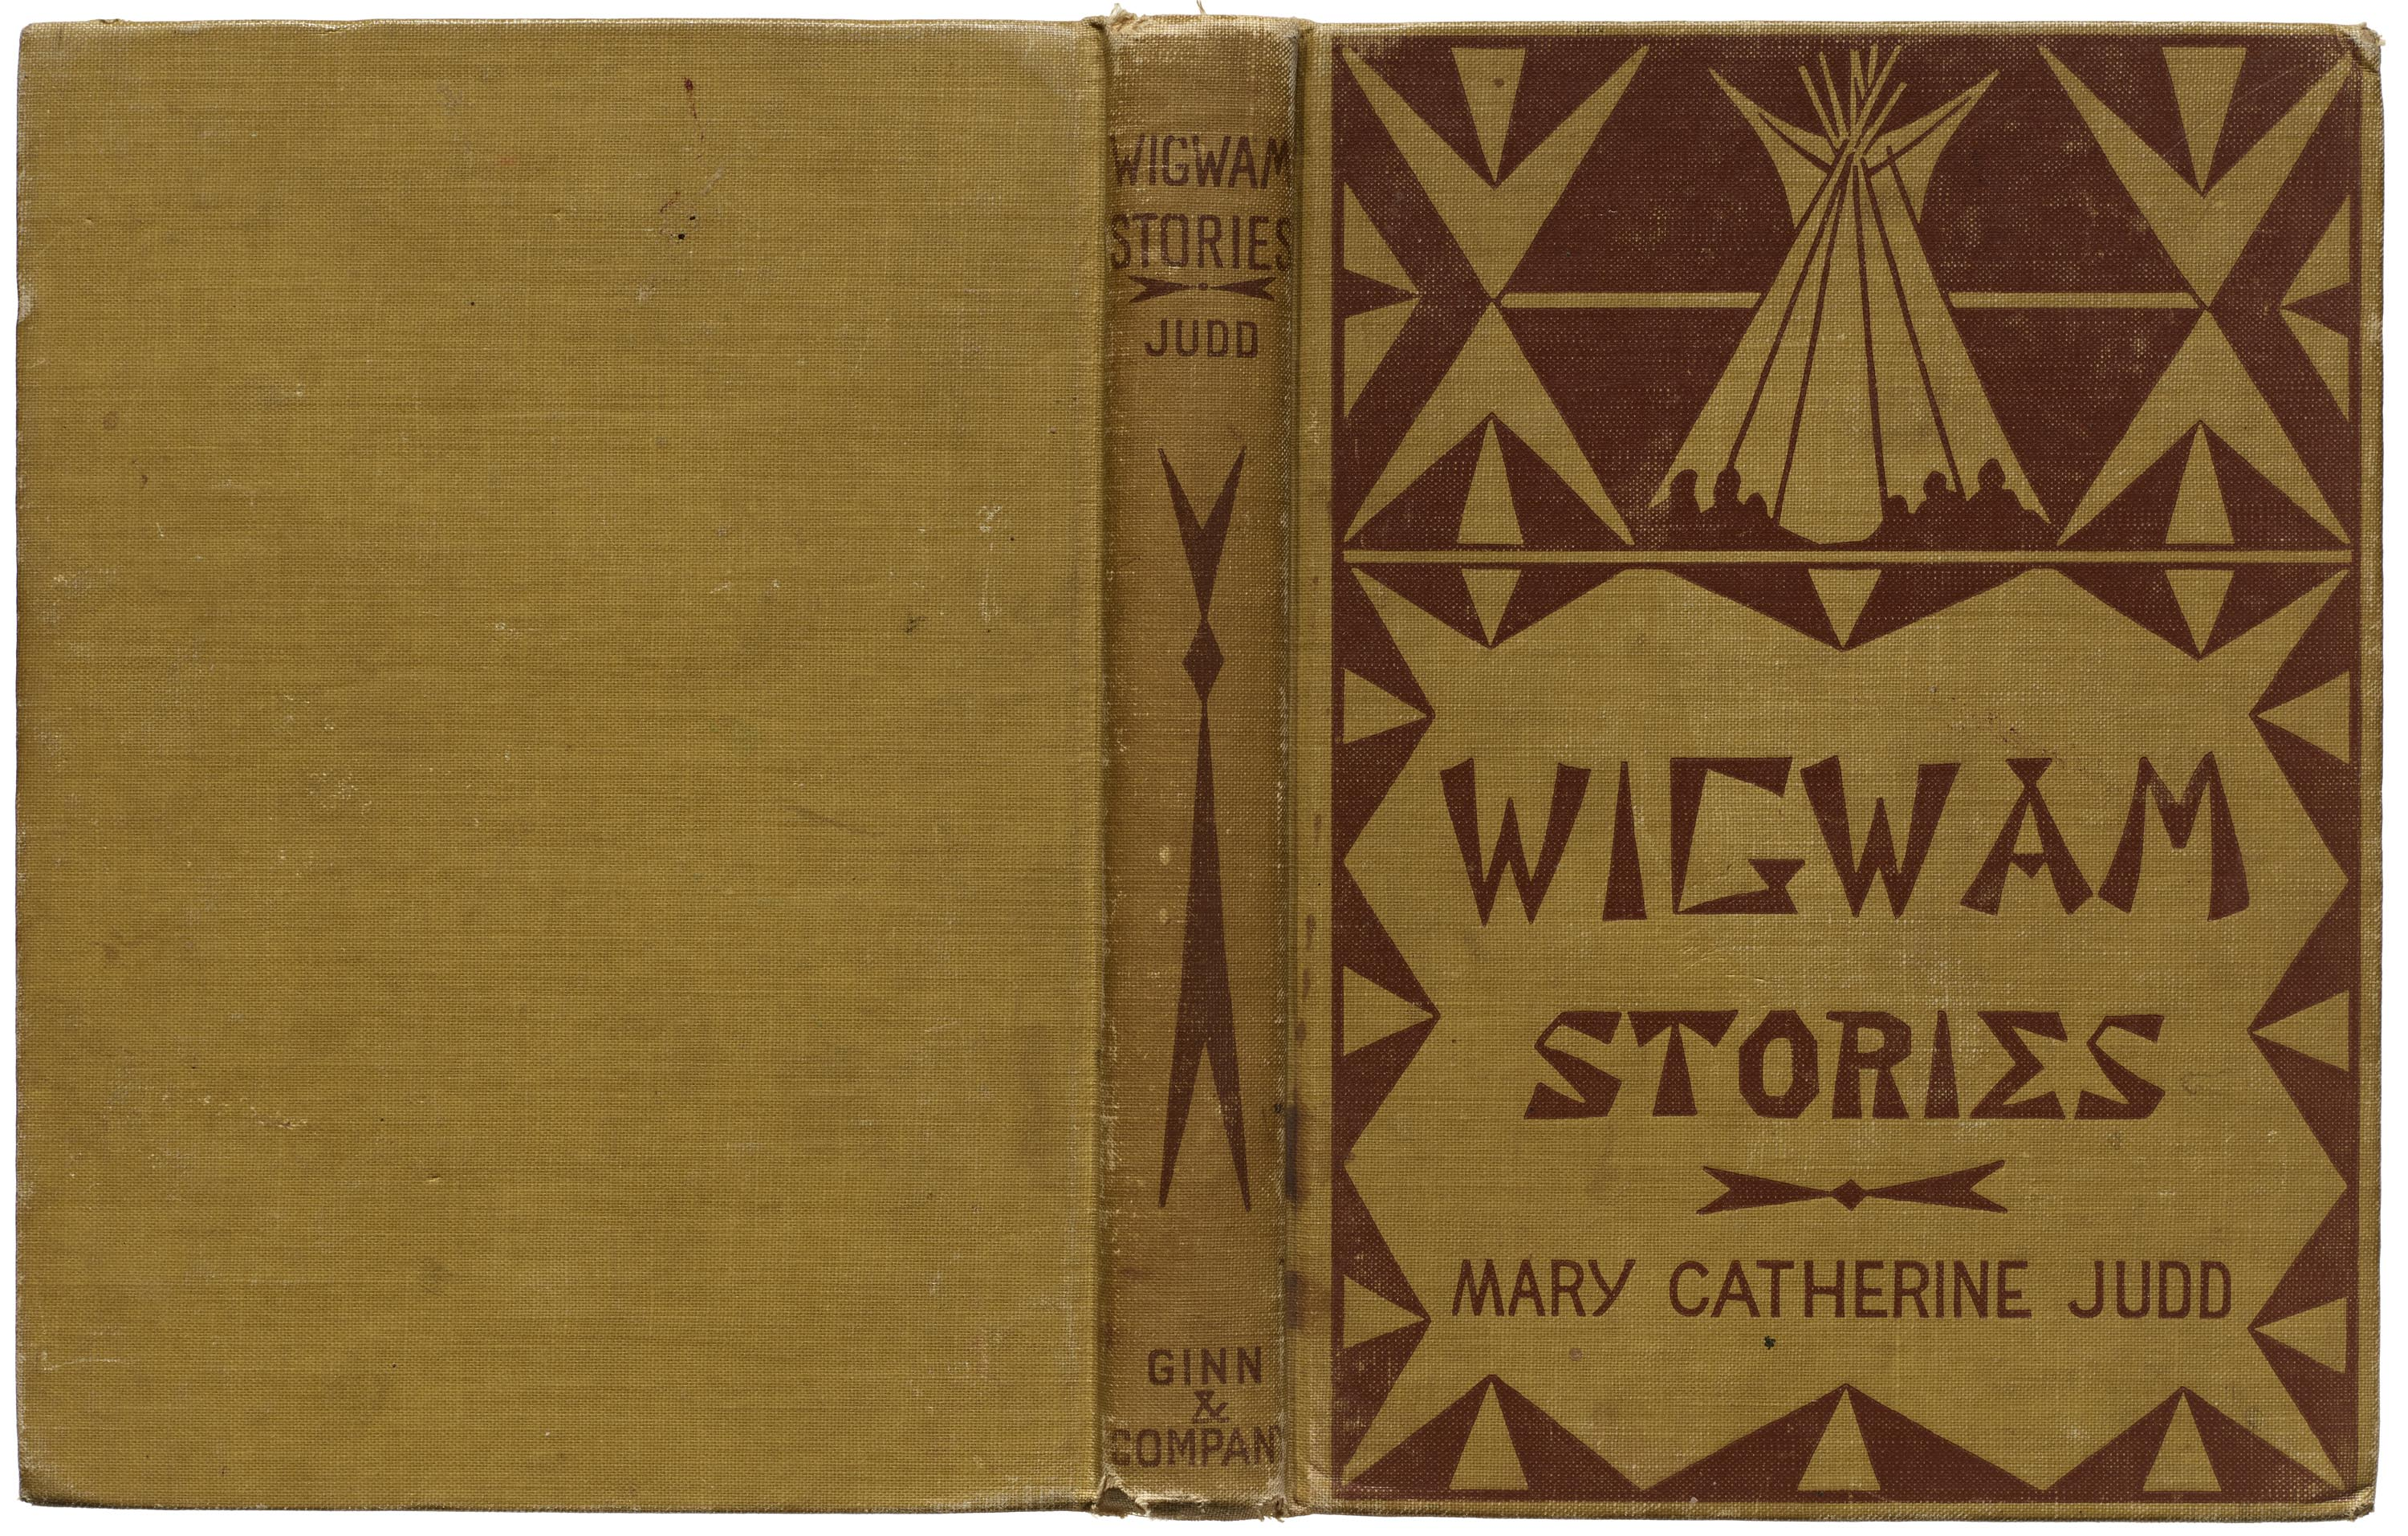 Angel DeCora, binding for Wigwam Stories, 1906 (first published 1902), Collection of LfA.